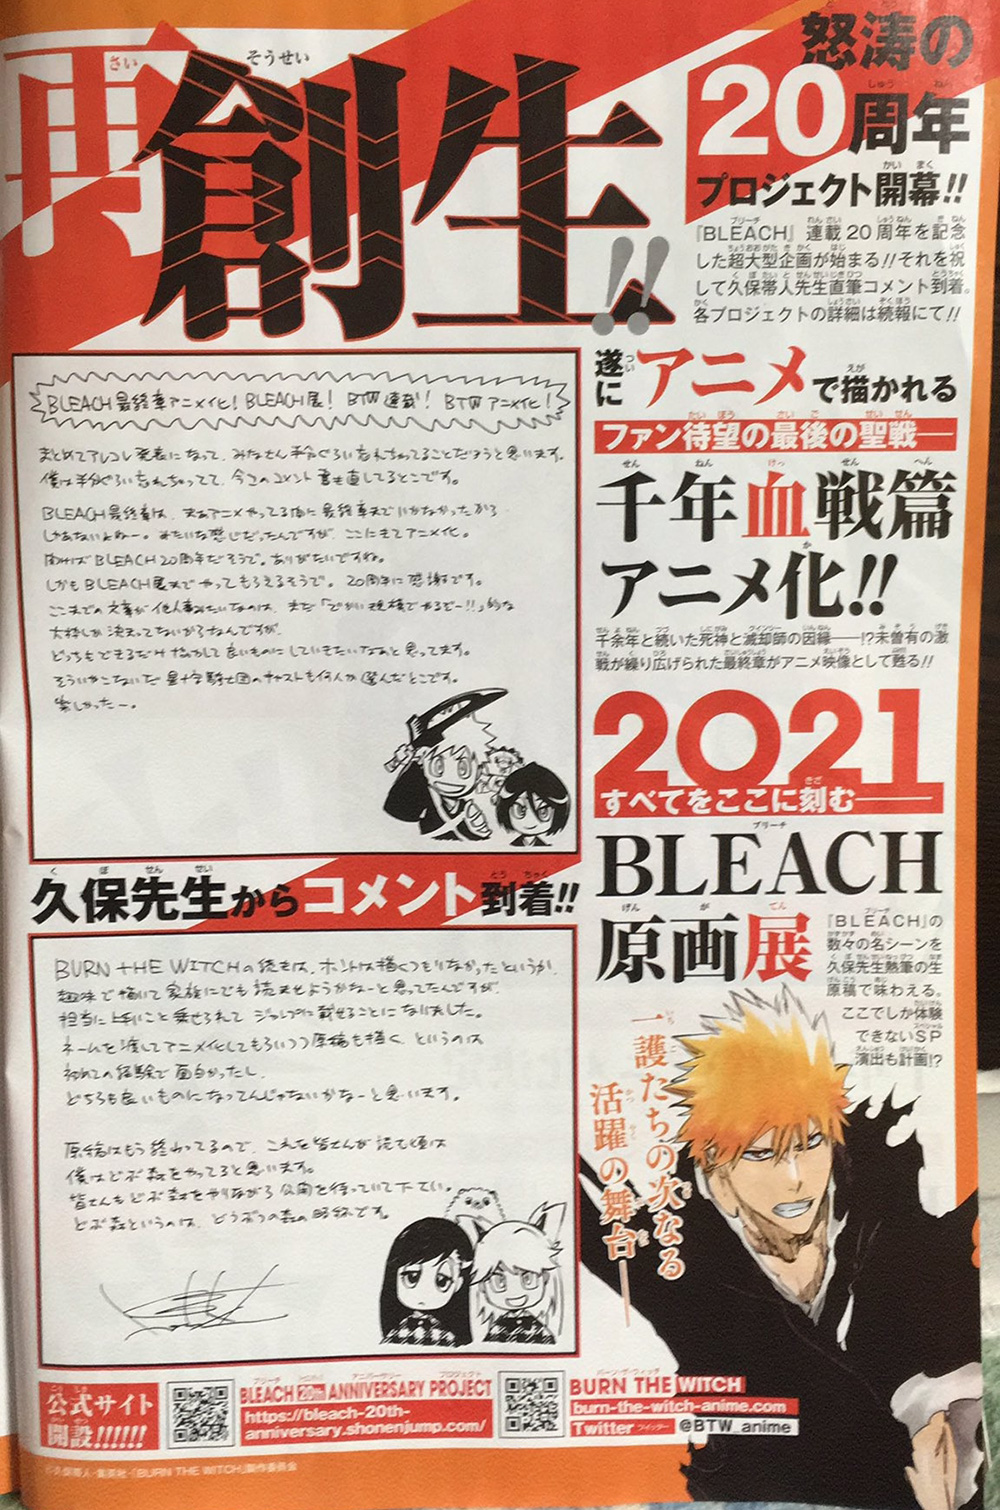 Bleach-Thousand-Year-Blood-War-Arc-Anime-Announcement-2